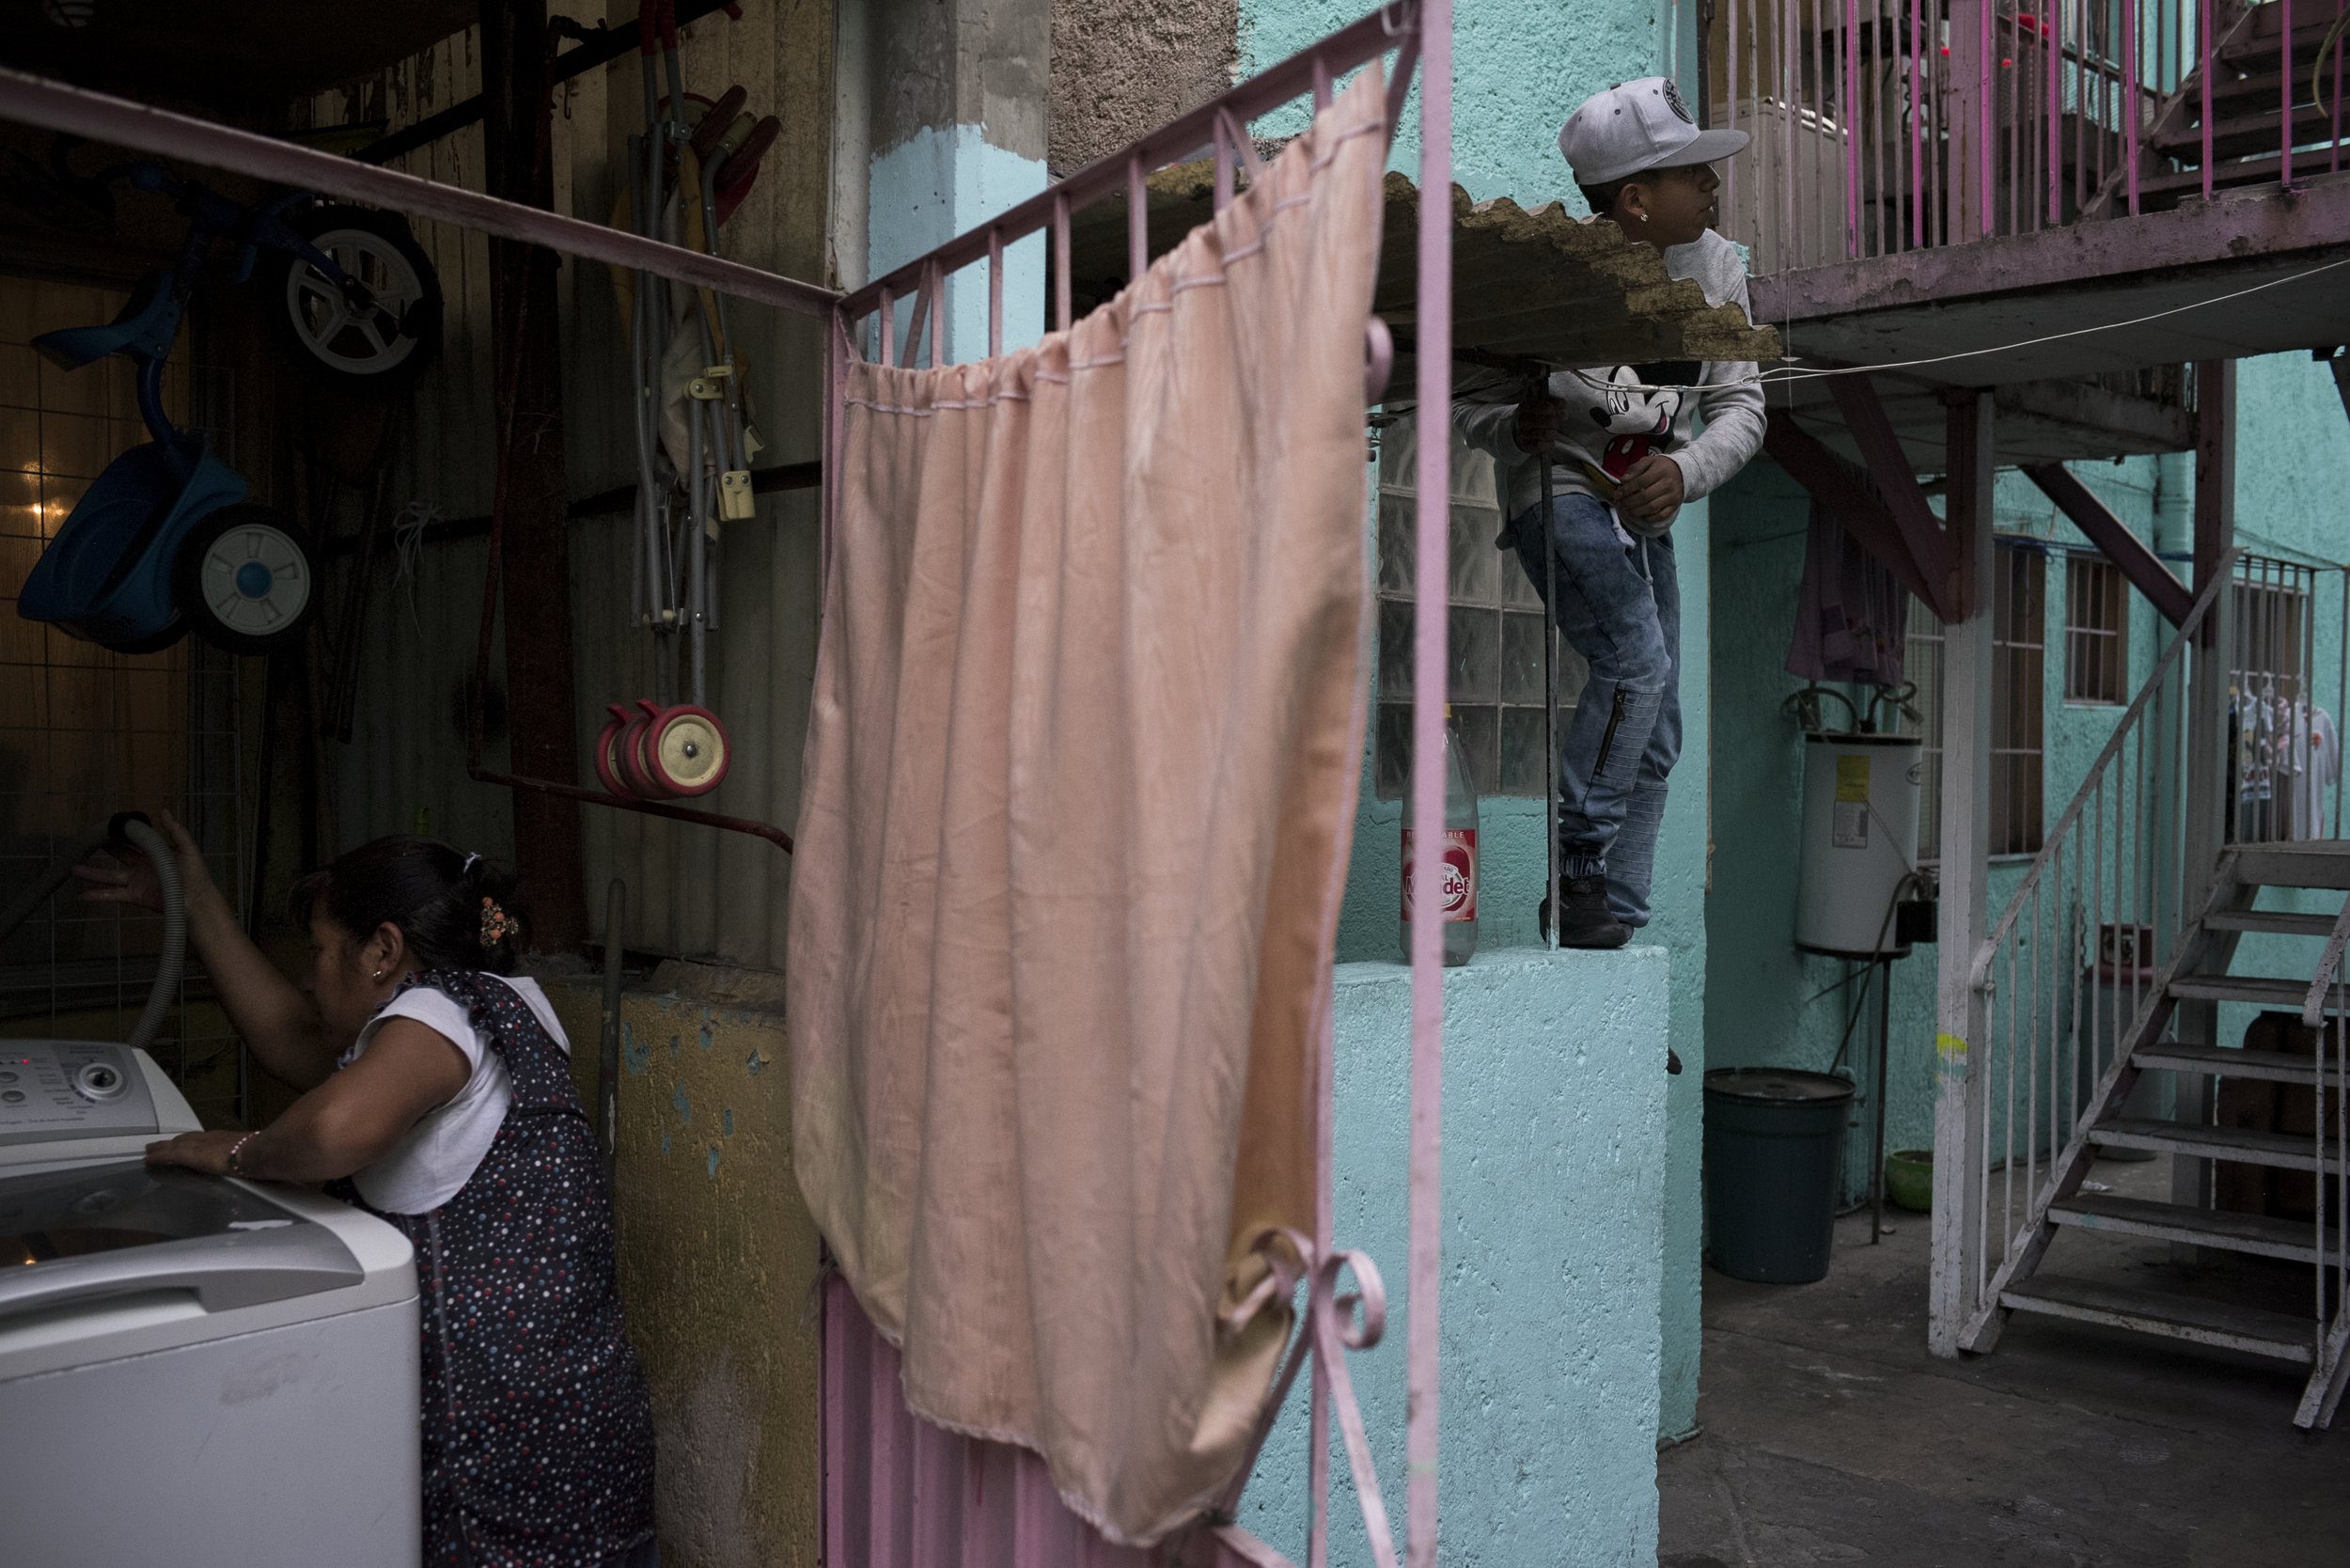 Pancho Villa Estevez, 15, is an aspiring boxer from Morelos, one of Mexico City's rougher neighborhoods. He lives at home with his mom, dad, two sisters, and a niece in a small two room apartment. The complex also serves as a  punto , used by drug dealers as a base of operations.